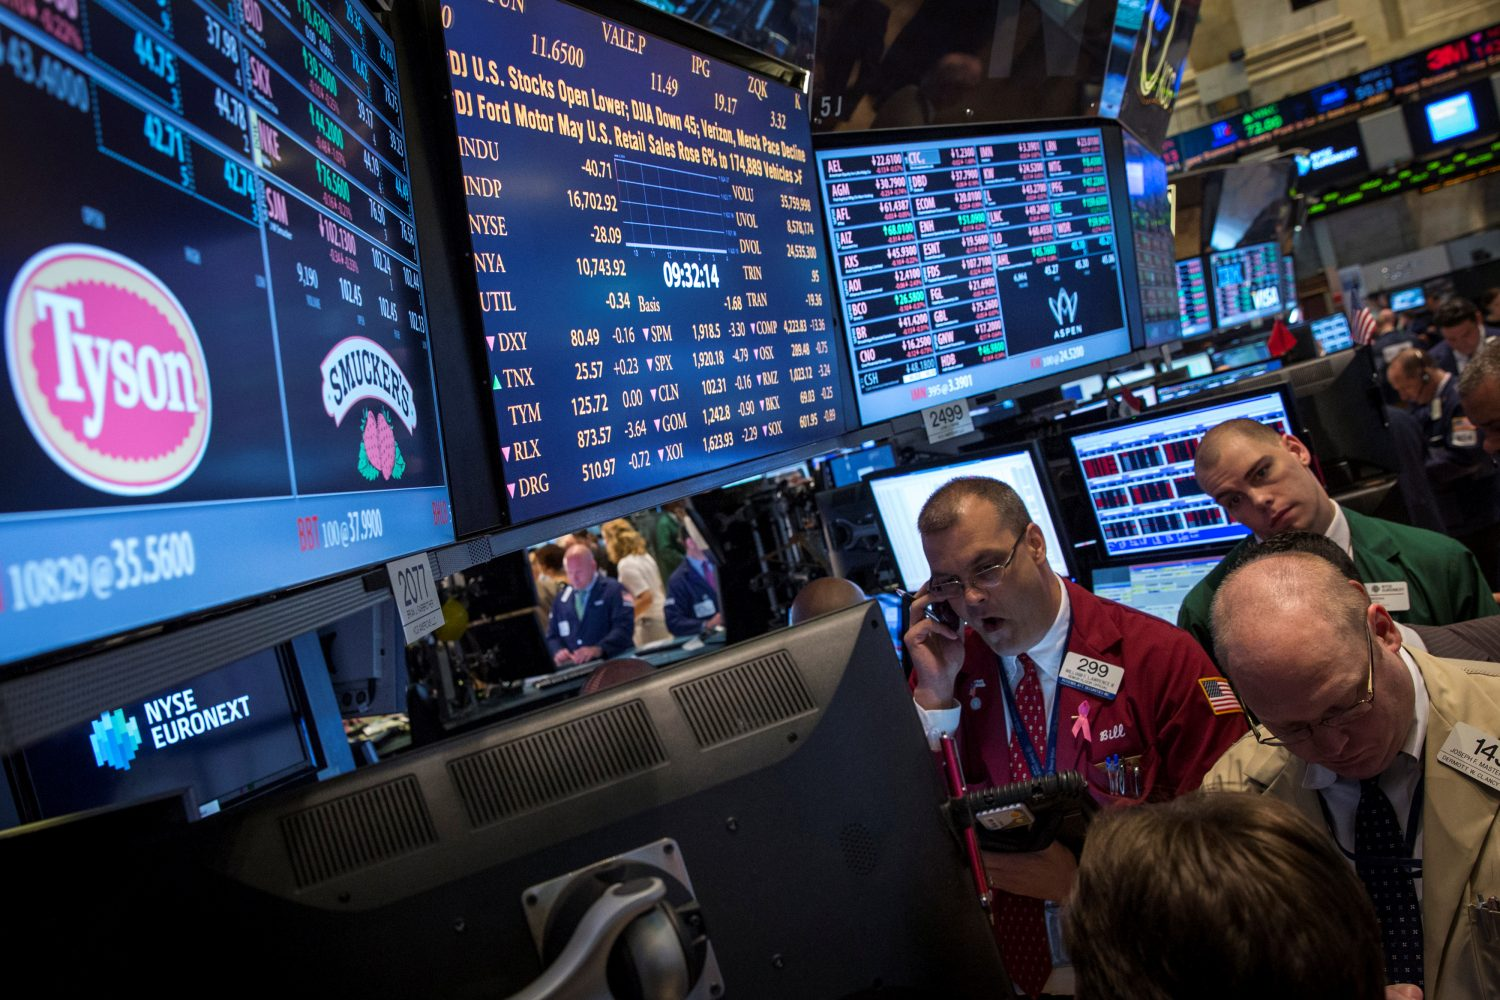 FILE PHOTO: Traders gather at the post that trades Tyson Foods on the floor of the New York Stock Exchange June 3, 2014. REUTERS/Brendan McDermid/File Photo